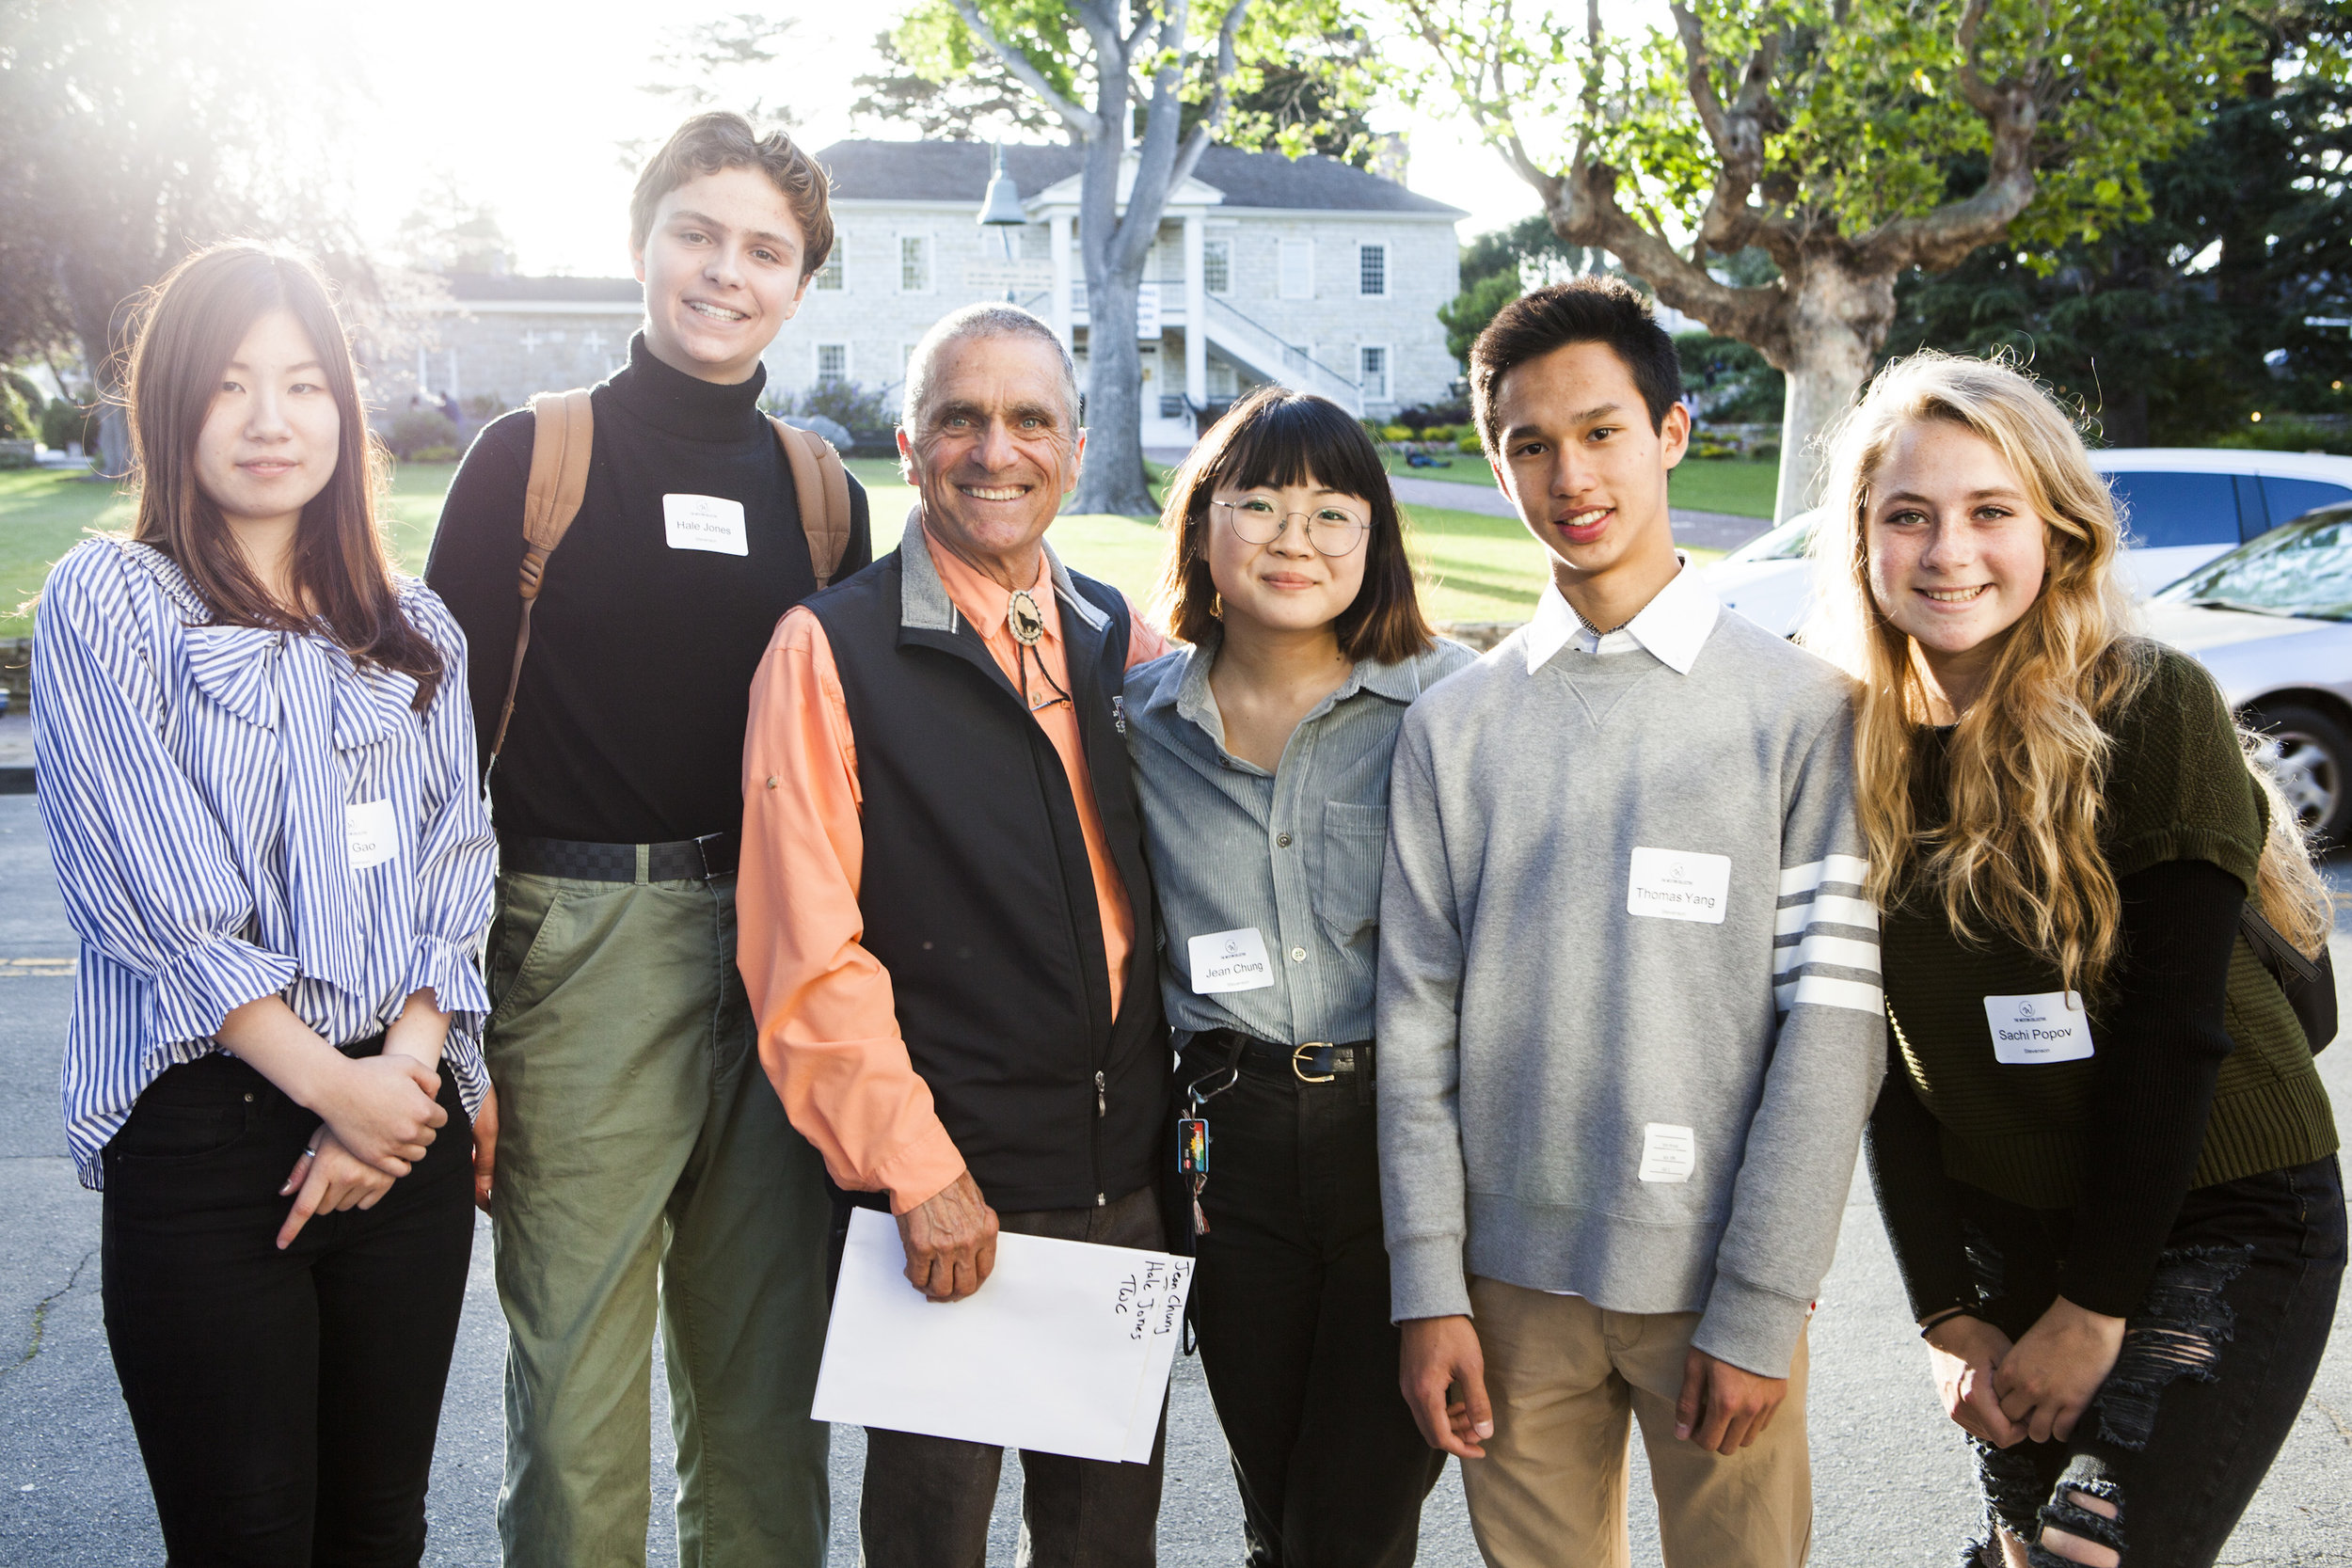 Stevenson School photography students with instructor, Cole Thompson, at the 2017 Weston Scholarship Exhibition at the Monterey Museum of Art.  Photo: © Michelle Magdalena Maddox